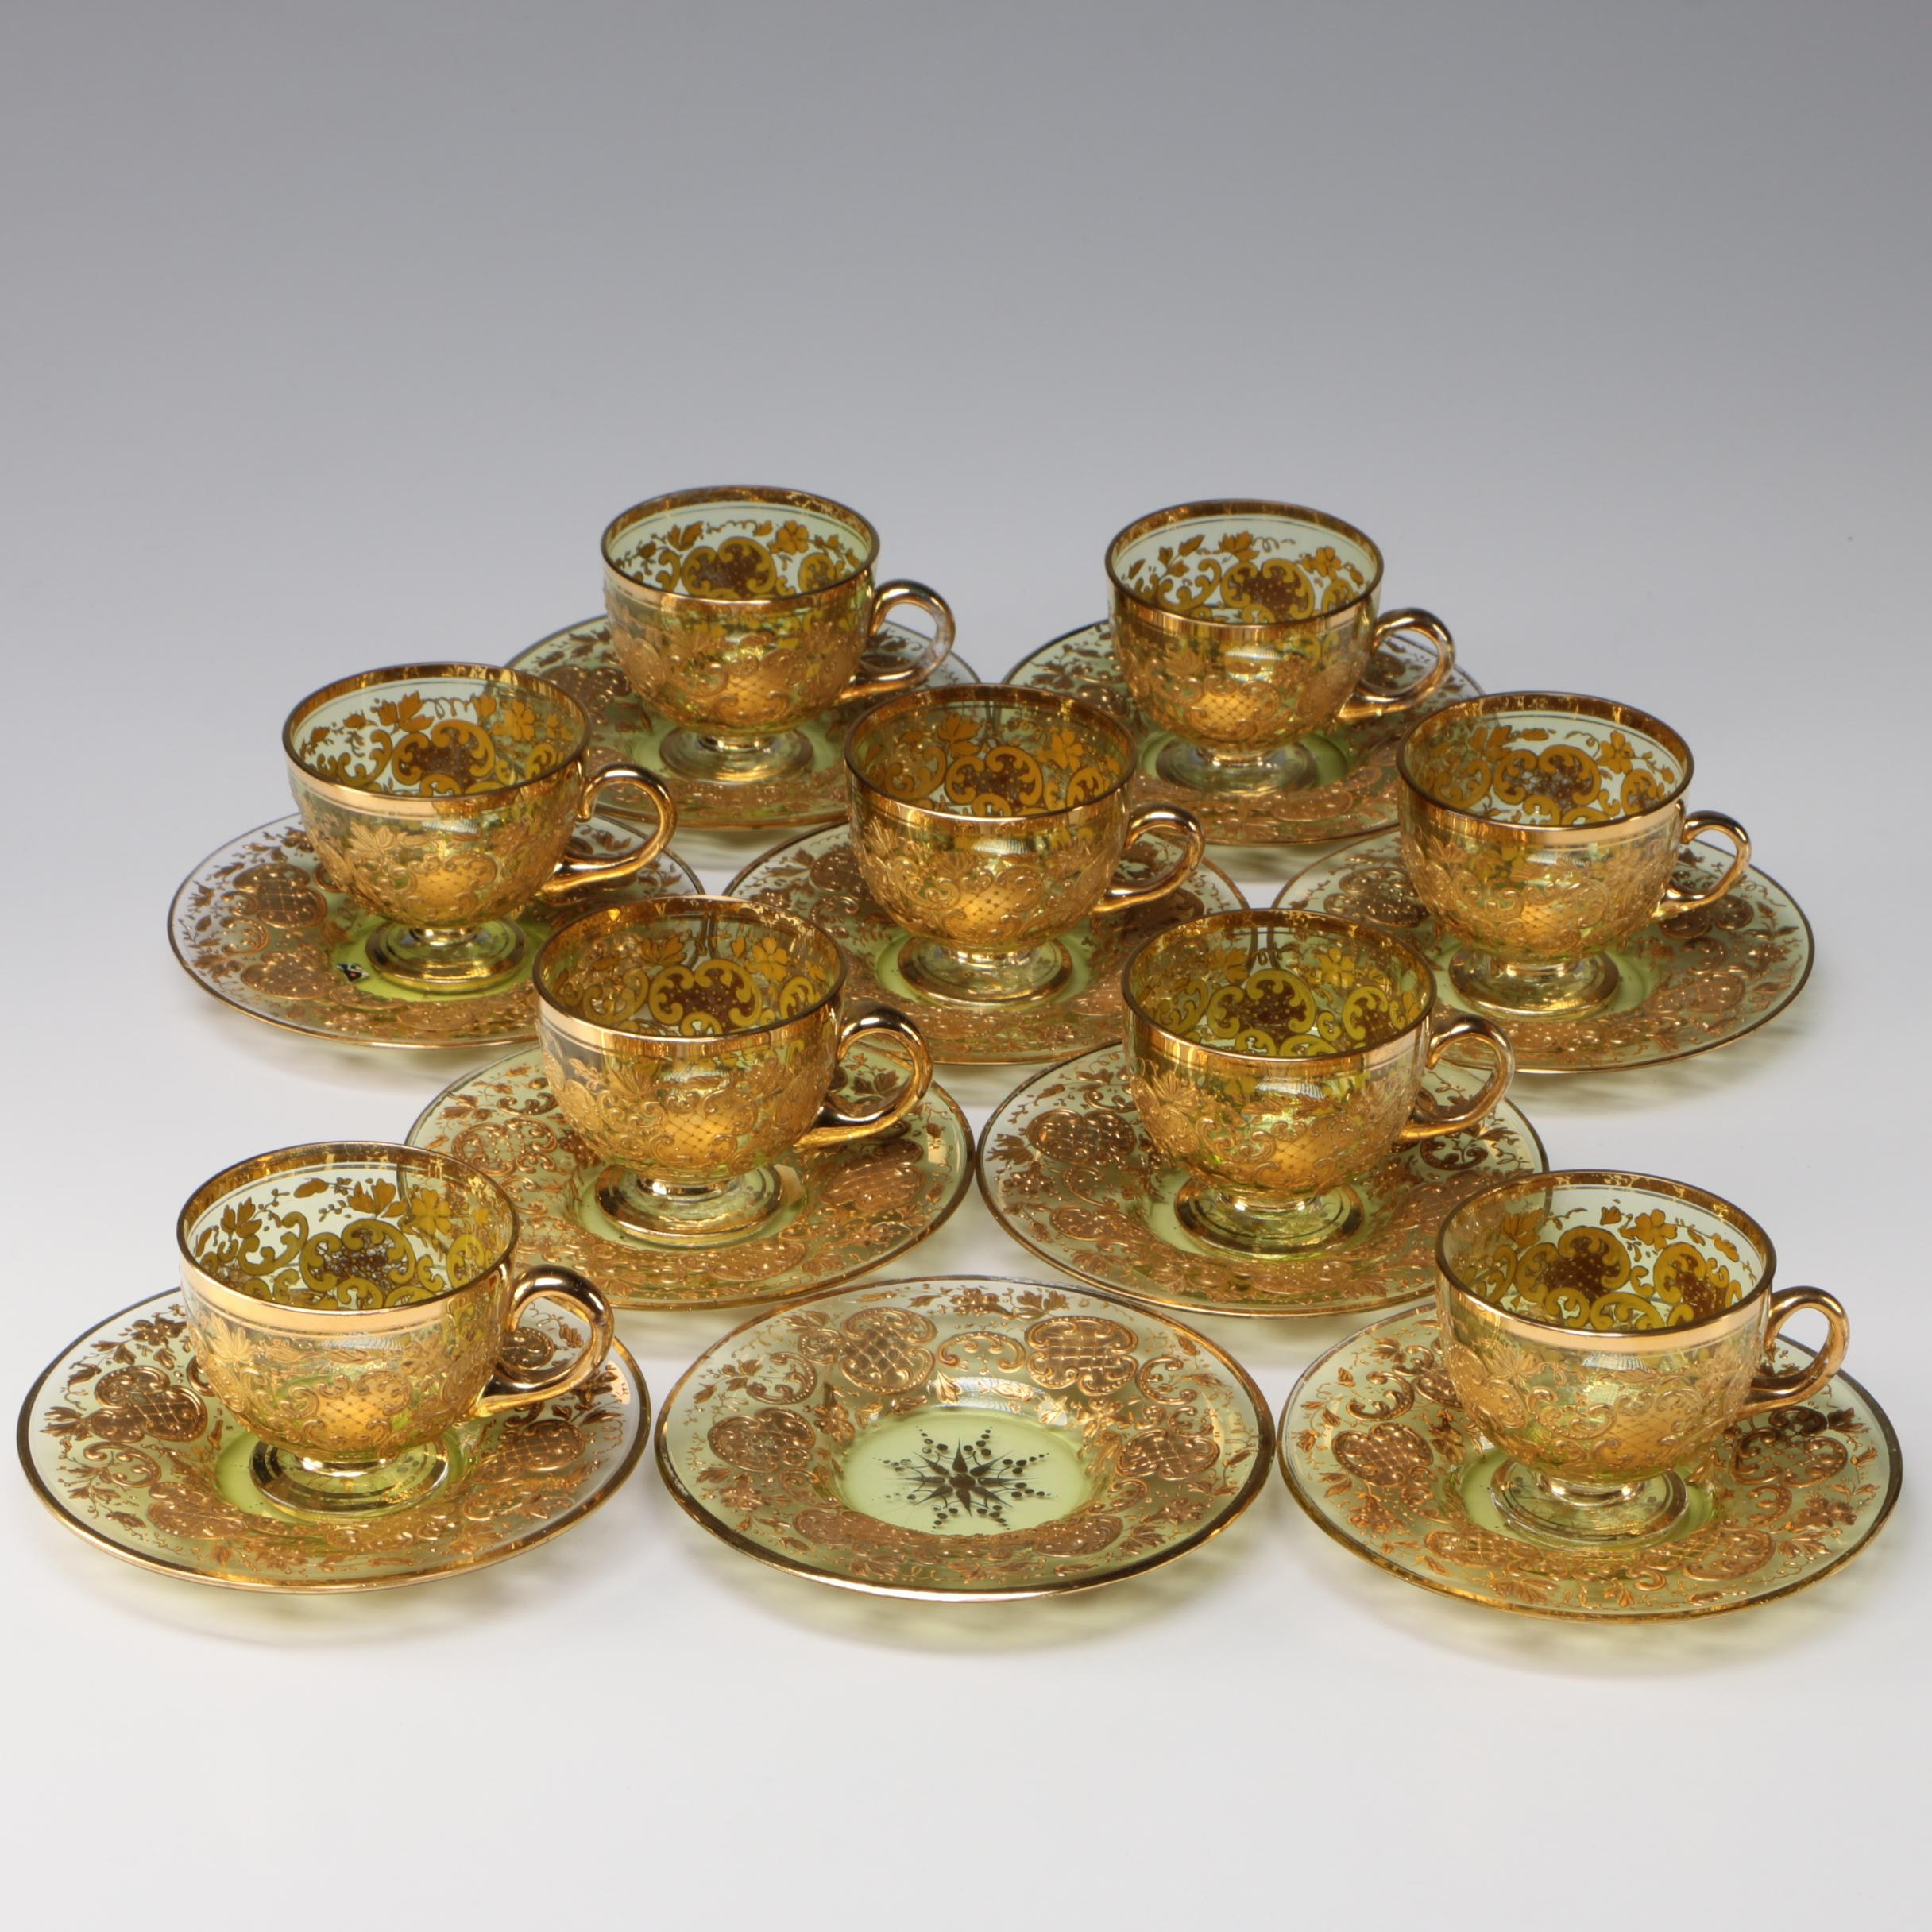 Gilt Encrusted Glass Teacups and Saucers, Early/Mid 20th Century